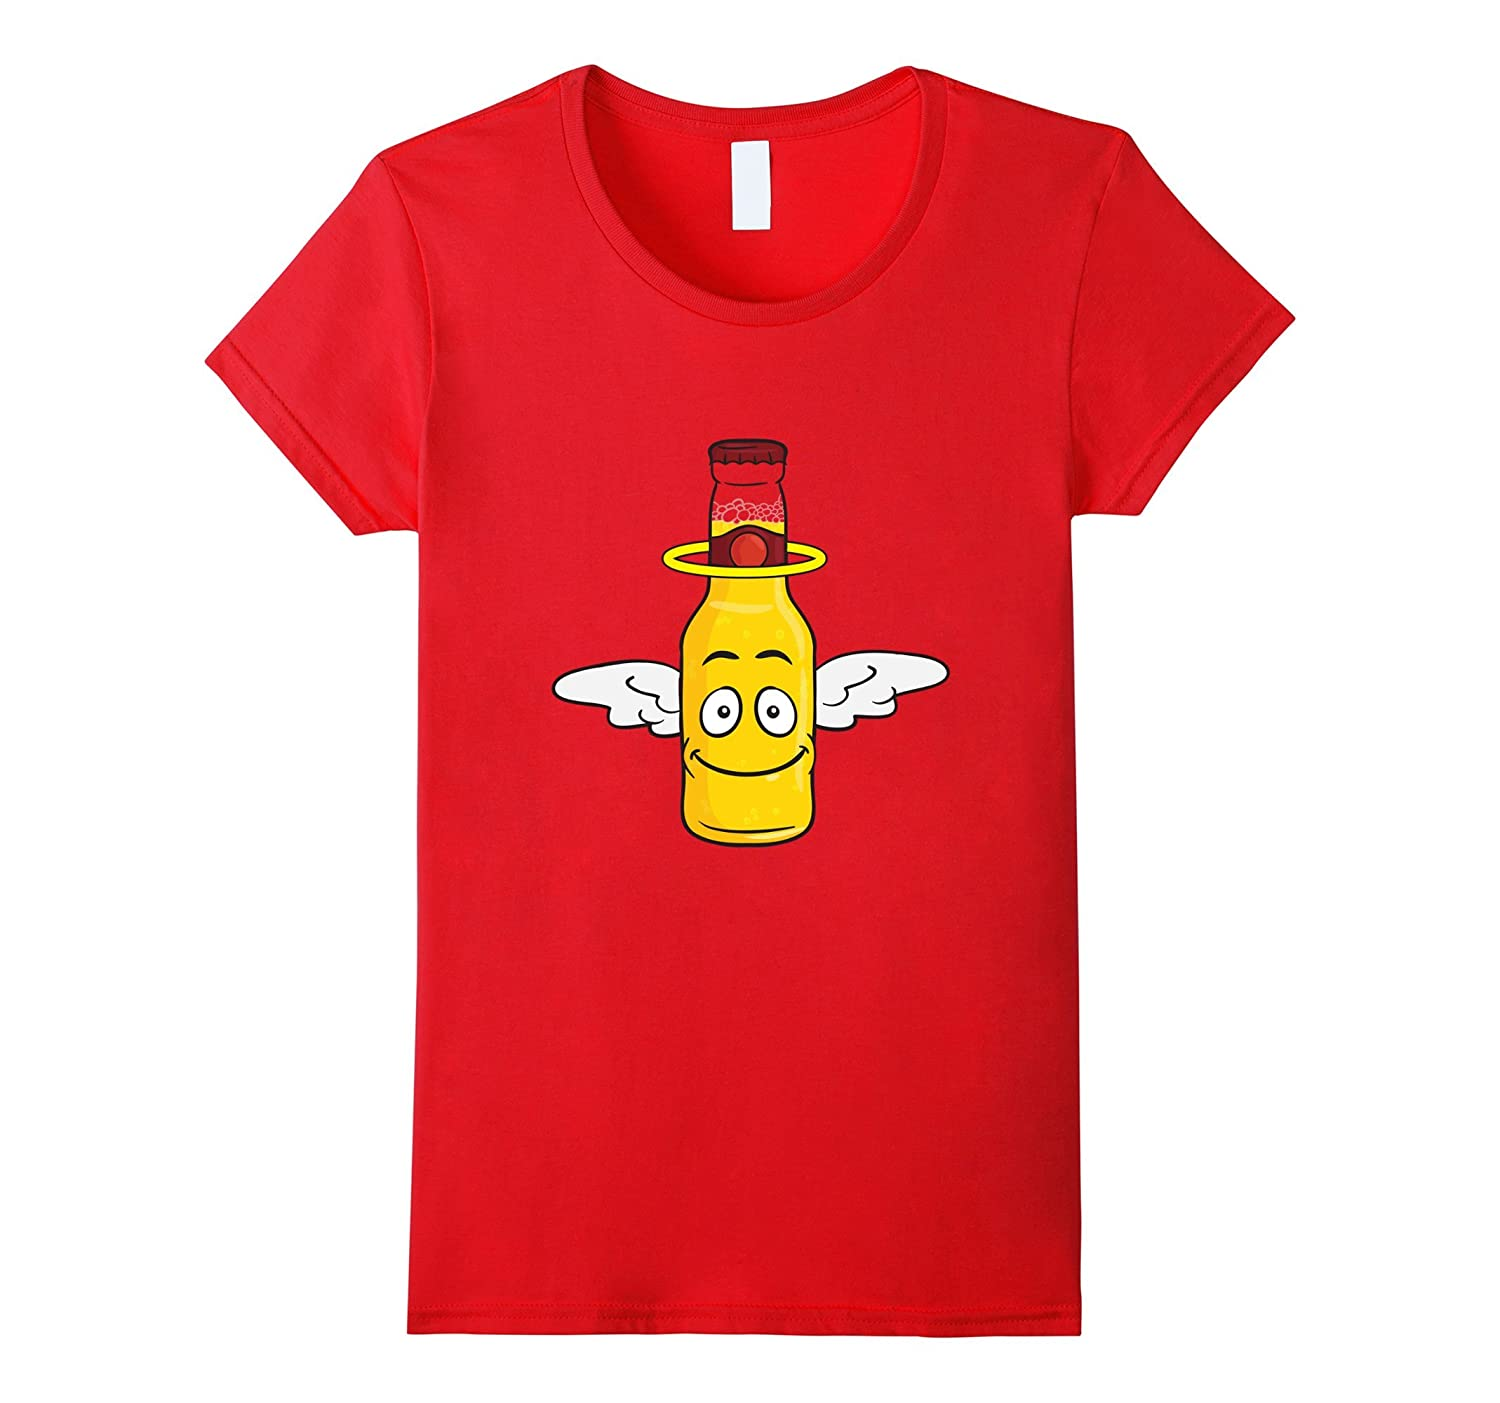 Angel Emoji T-Shirt (Beer With Wings & Halo)